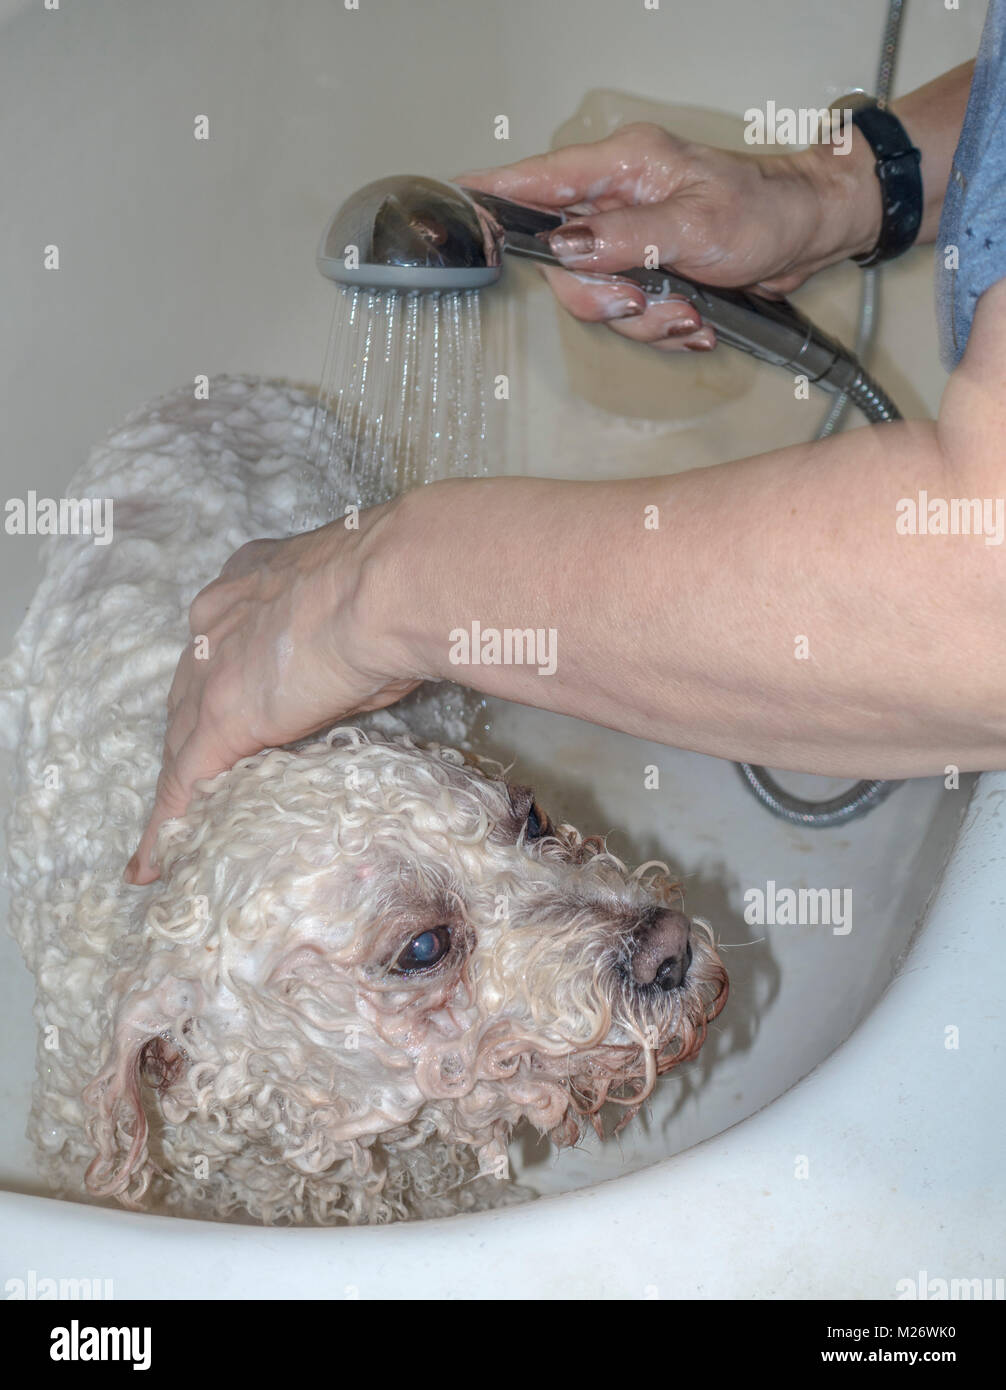 Woman washing her white curly coated, pedigree pet Bichon Frise dog, in a bath tub at home, with warm, soapy water. - Stock Image